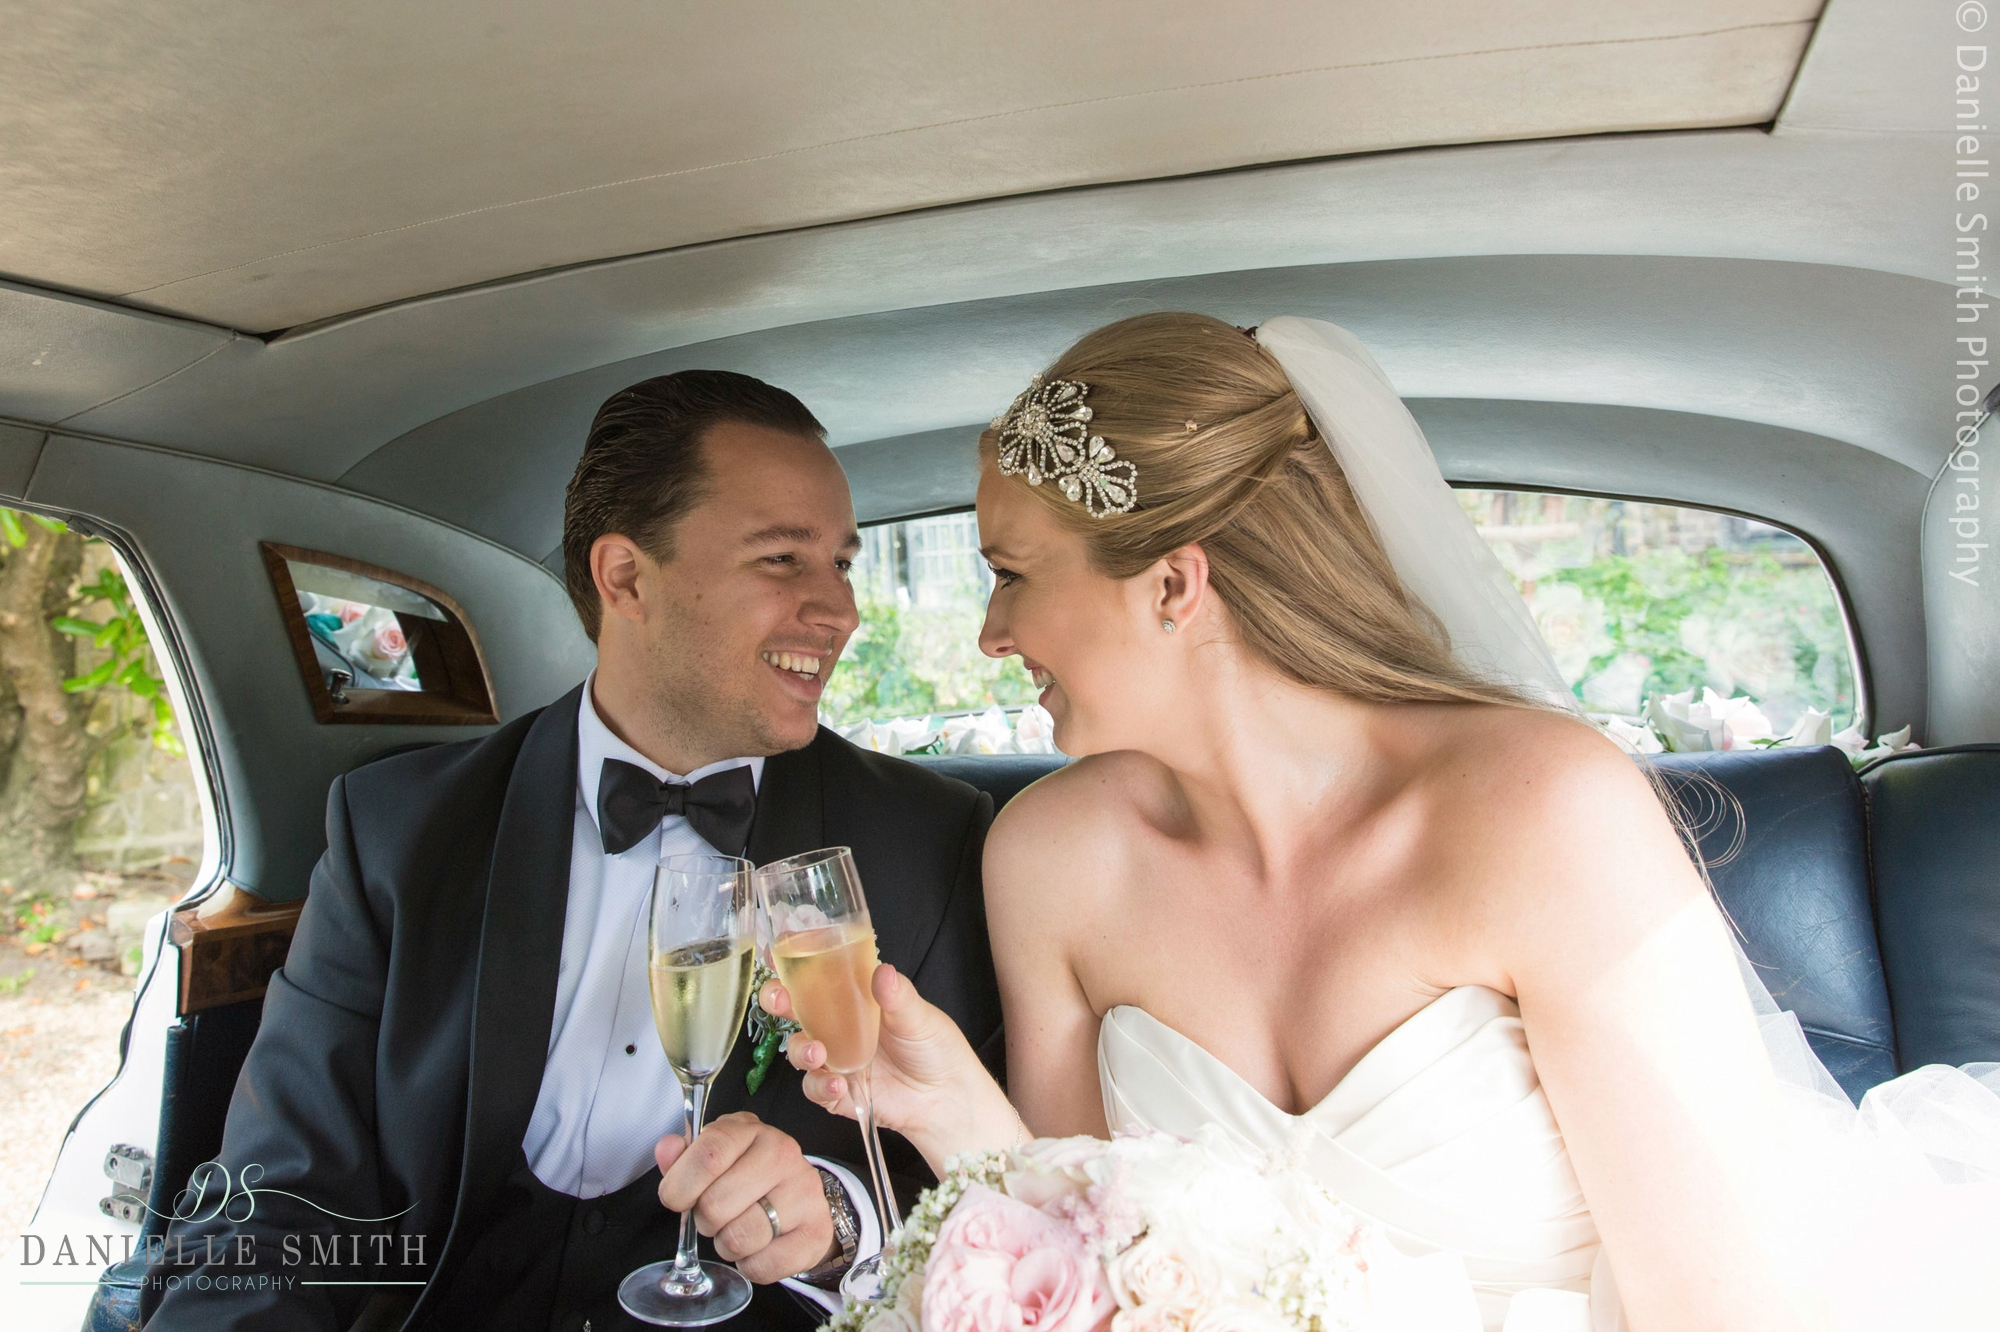 bride and groom toasting in wedding car - summer garden wedding